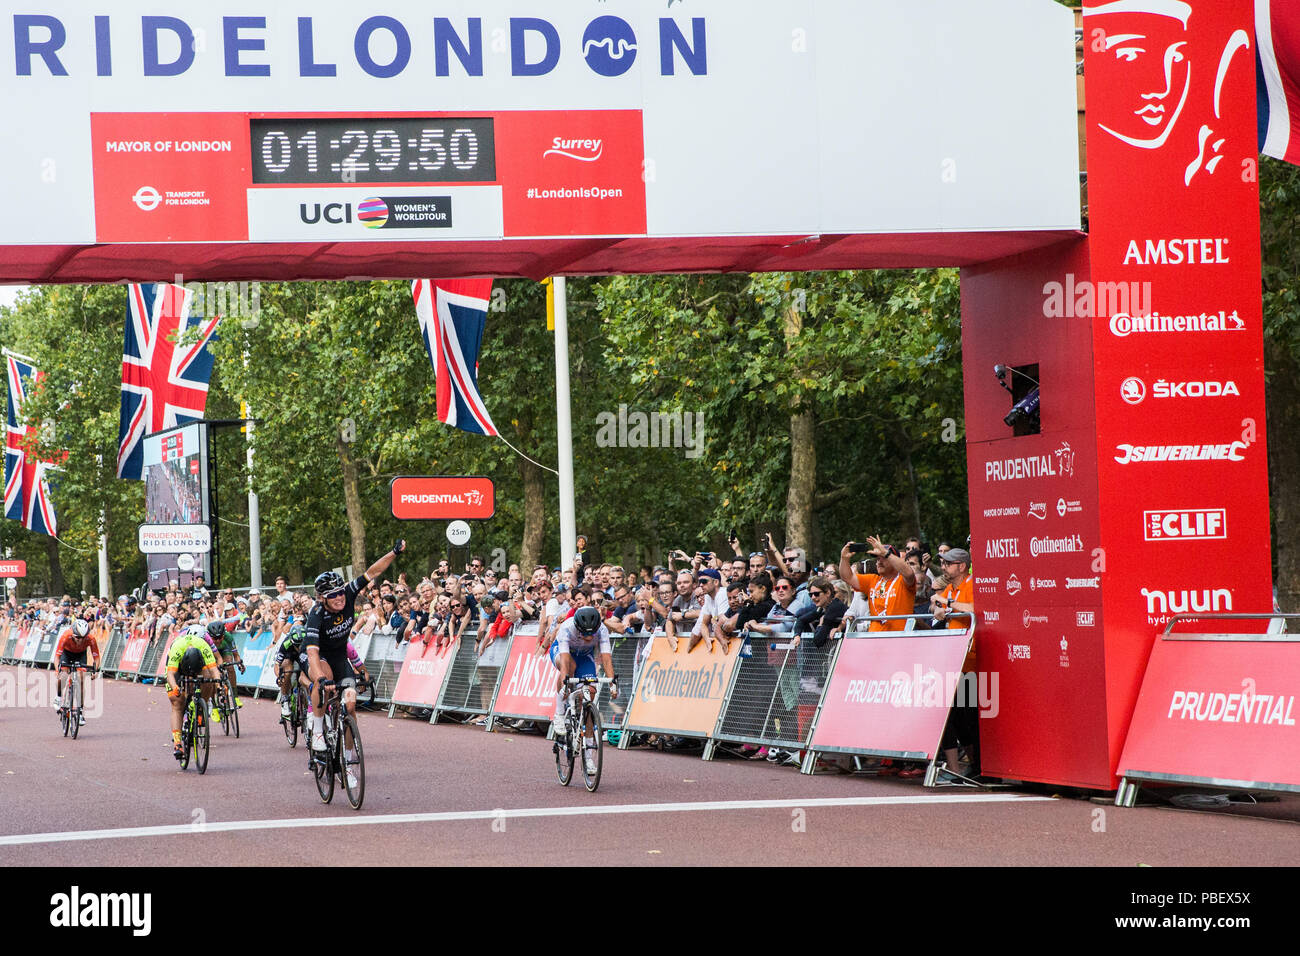 London, UK. 28th July, 2018. Kirsten Wild of the Wiggle High5 team wins the Prudential RideLondon Classique, the richest women's one-day race in cycling. The race is part of the UCI Women's World Tour and offers spectators the opportunity to see the world's best women's cycling teams battling it out over 12 laps of a closed 5.4km circuit starting and finishing on The Mall. Credit: Mark Kerrison/Alamy Live News Stock Photo